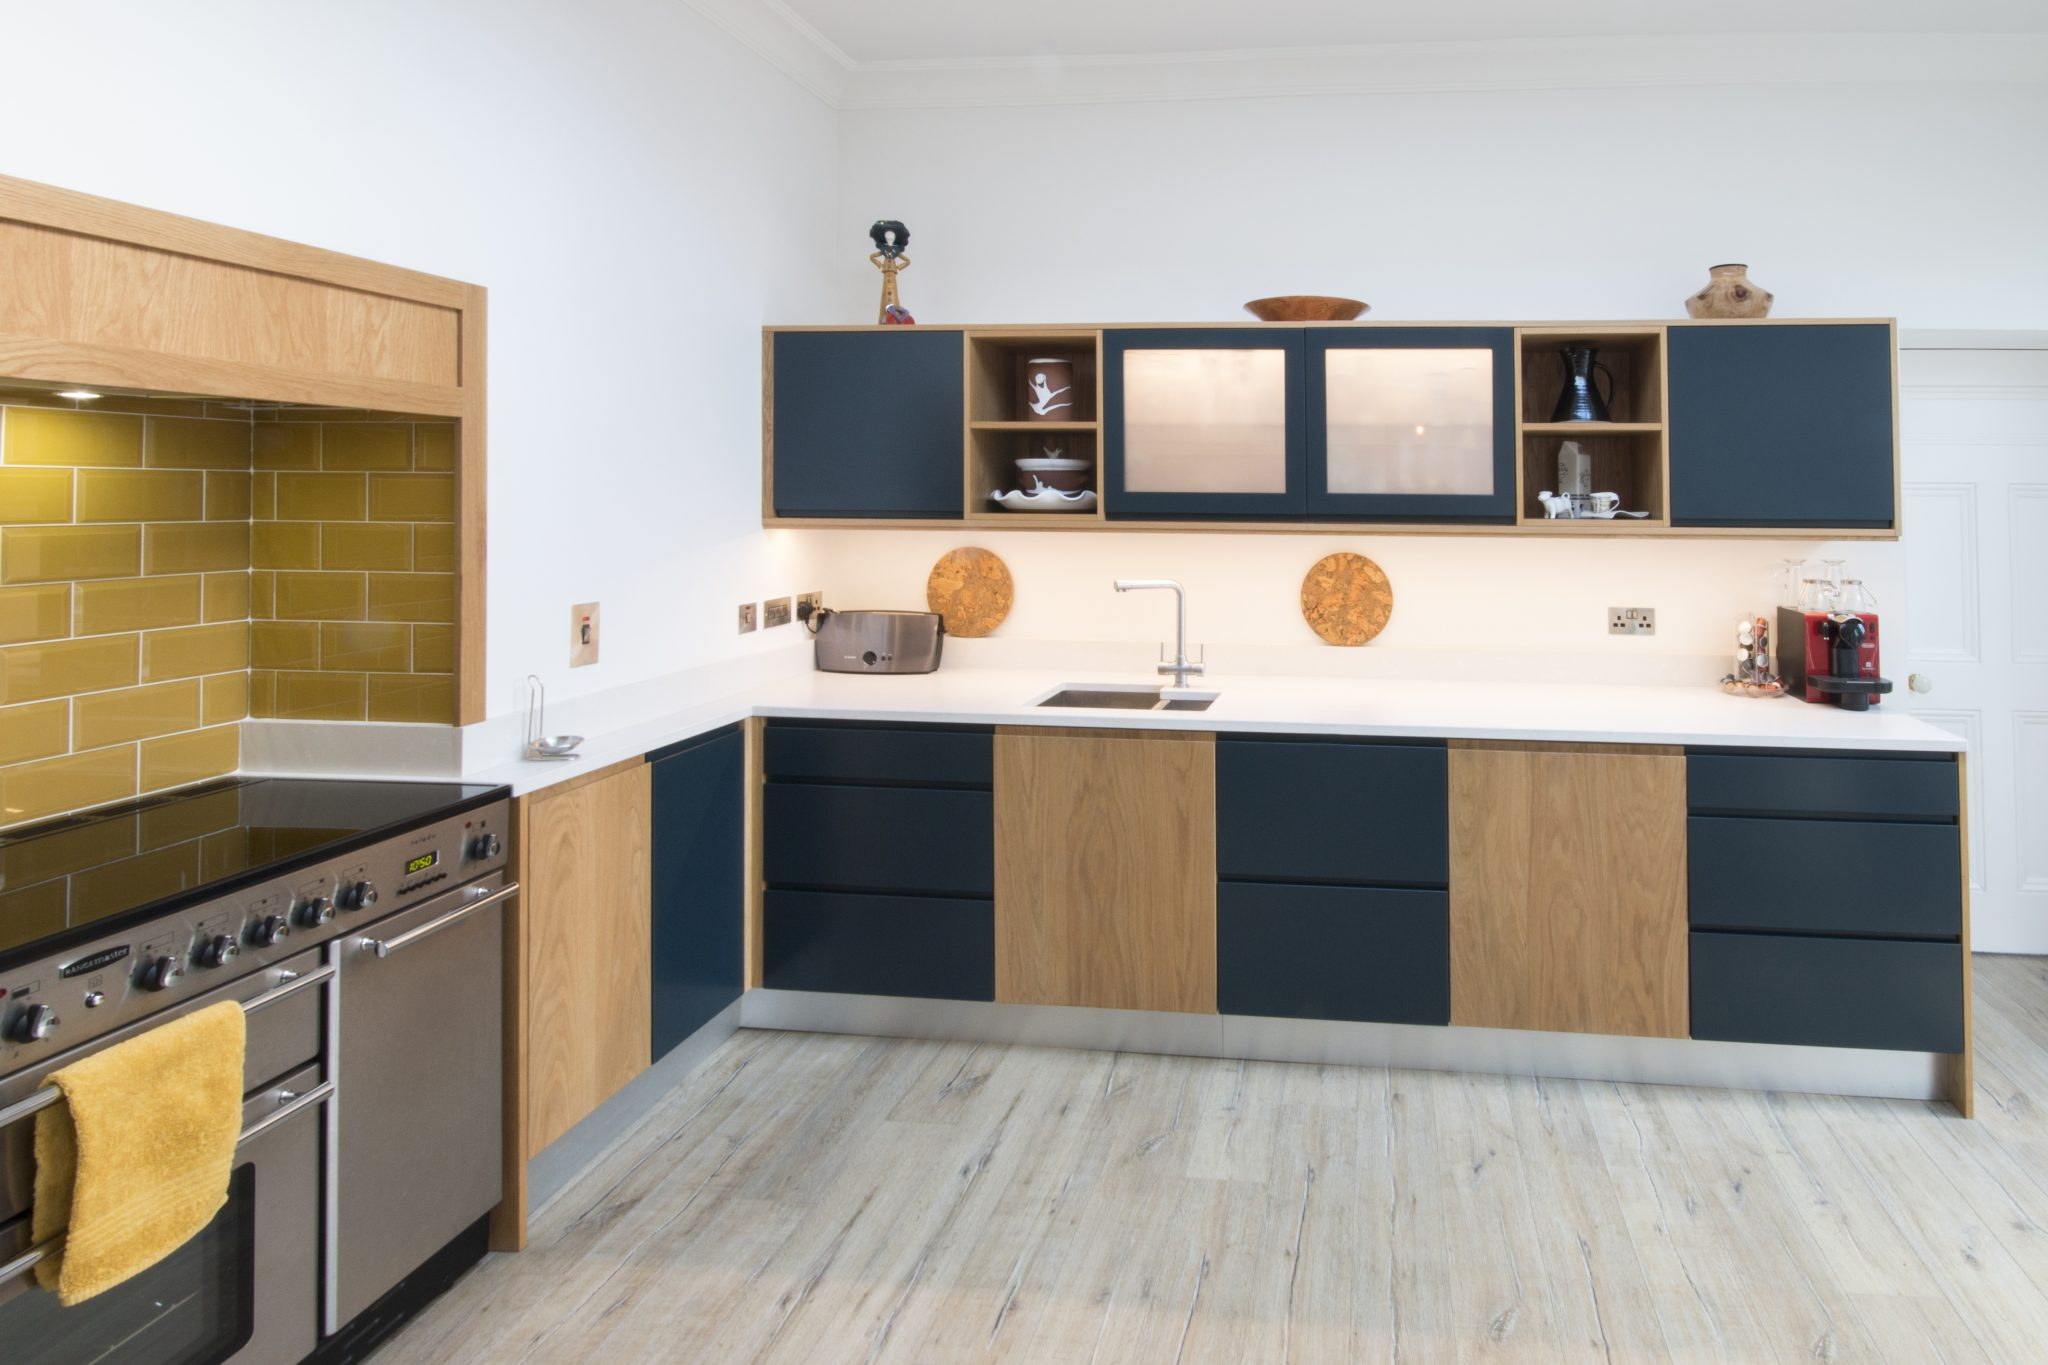 Enigma Design Bespoke Cabinetry Kitchen Oak Hague Blue 5